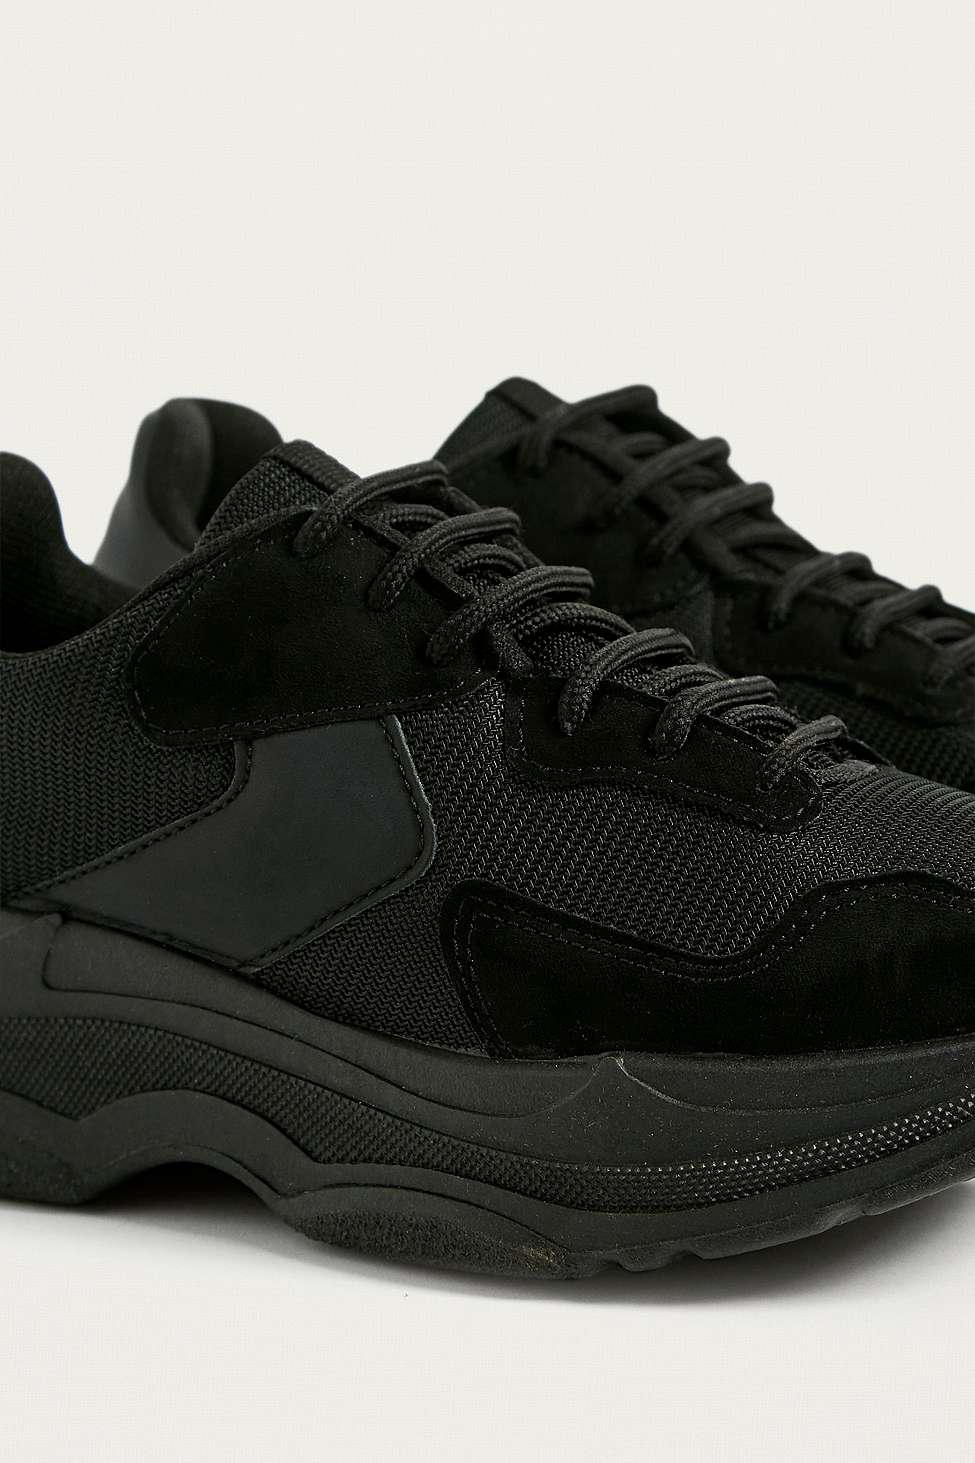 Urban Outfitters Rubber Uo Track Chunky